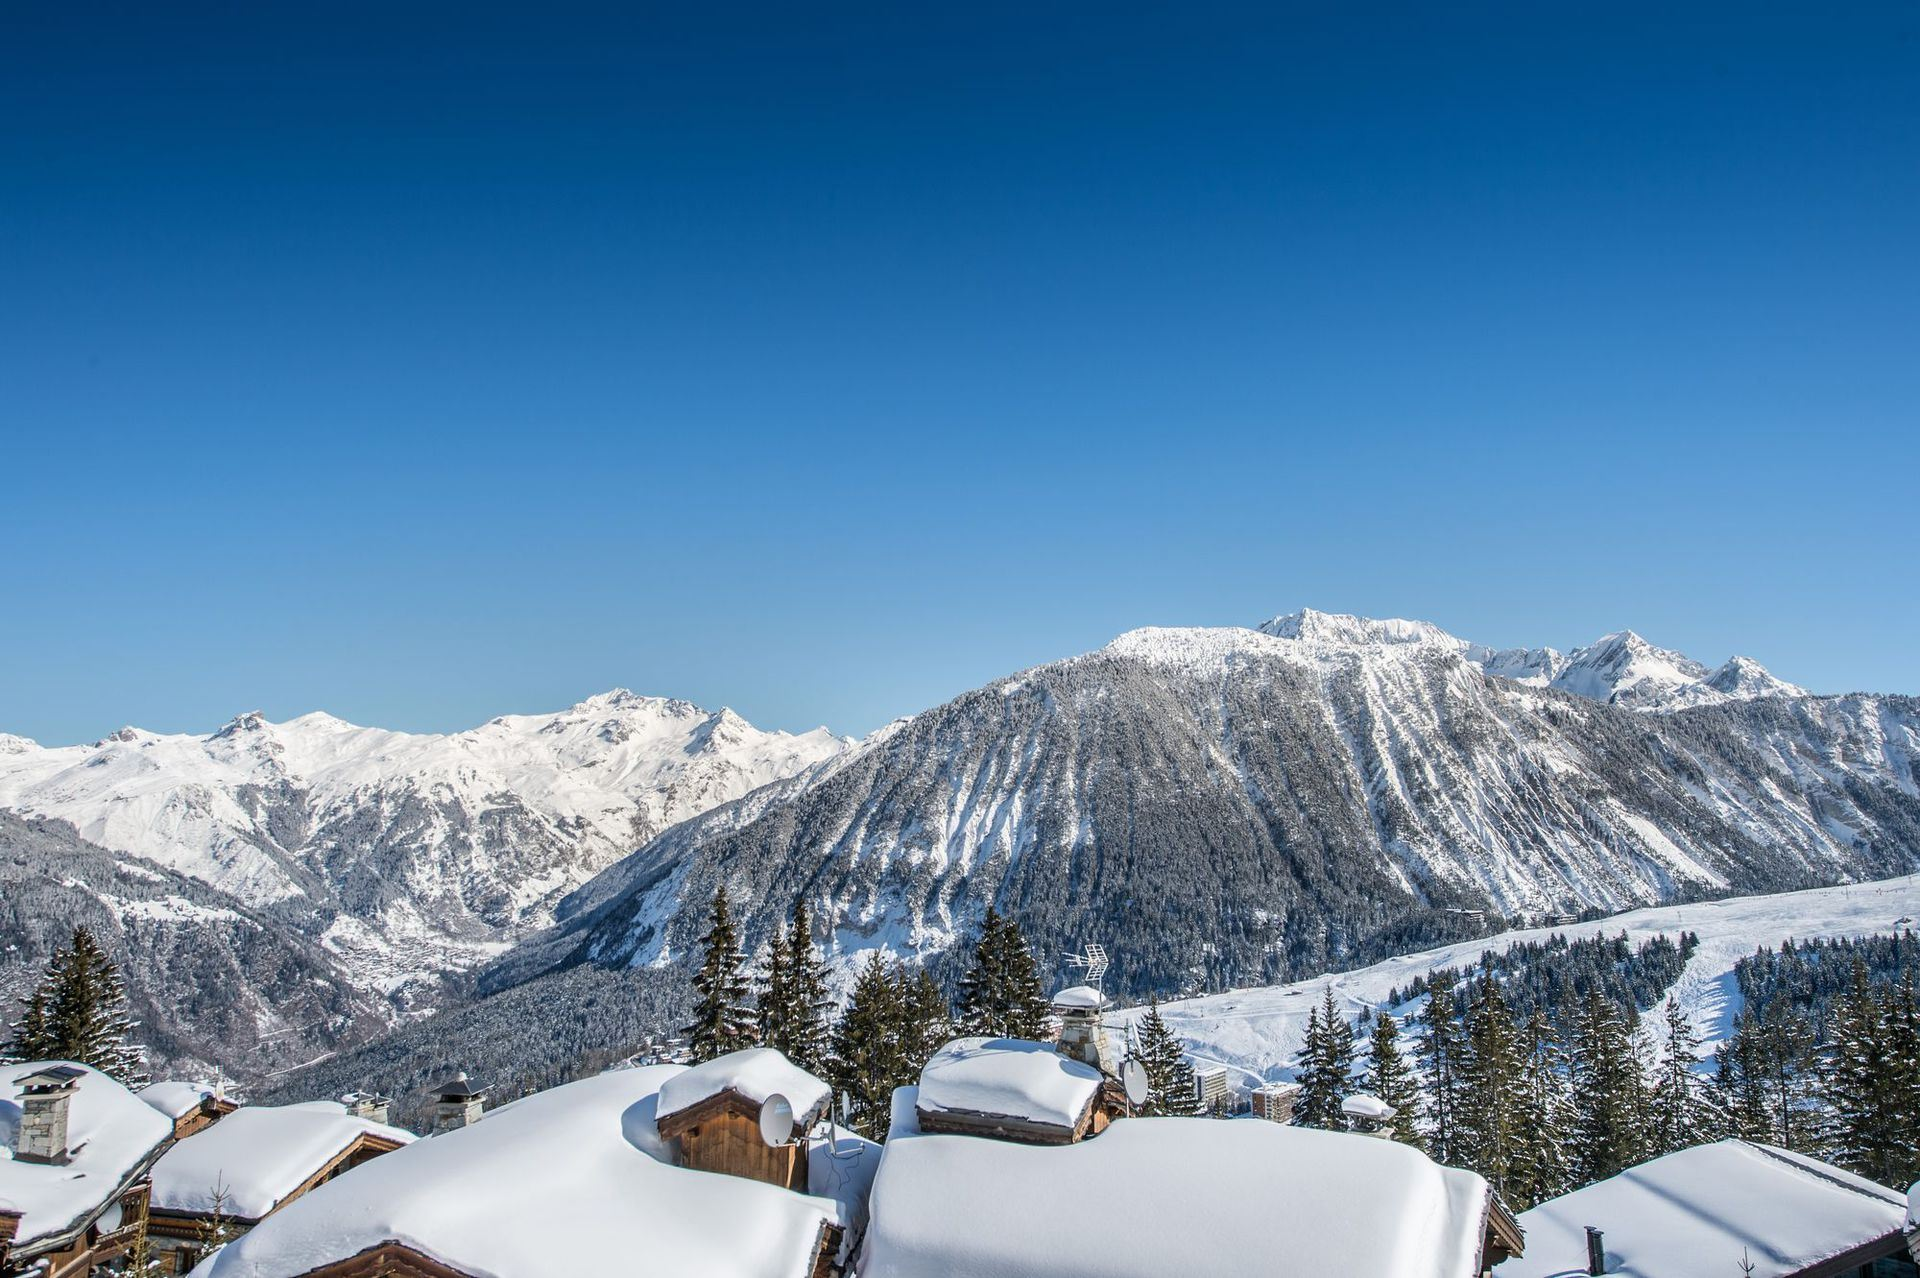 8 rooms 12 people / Chalet White Dream (Mountain of exception)